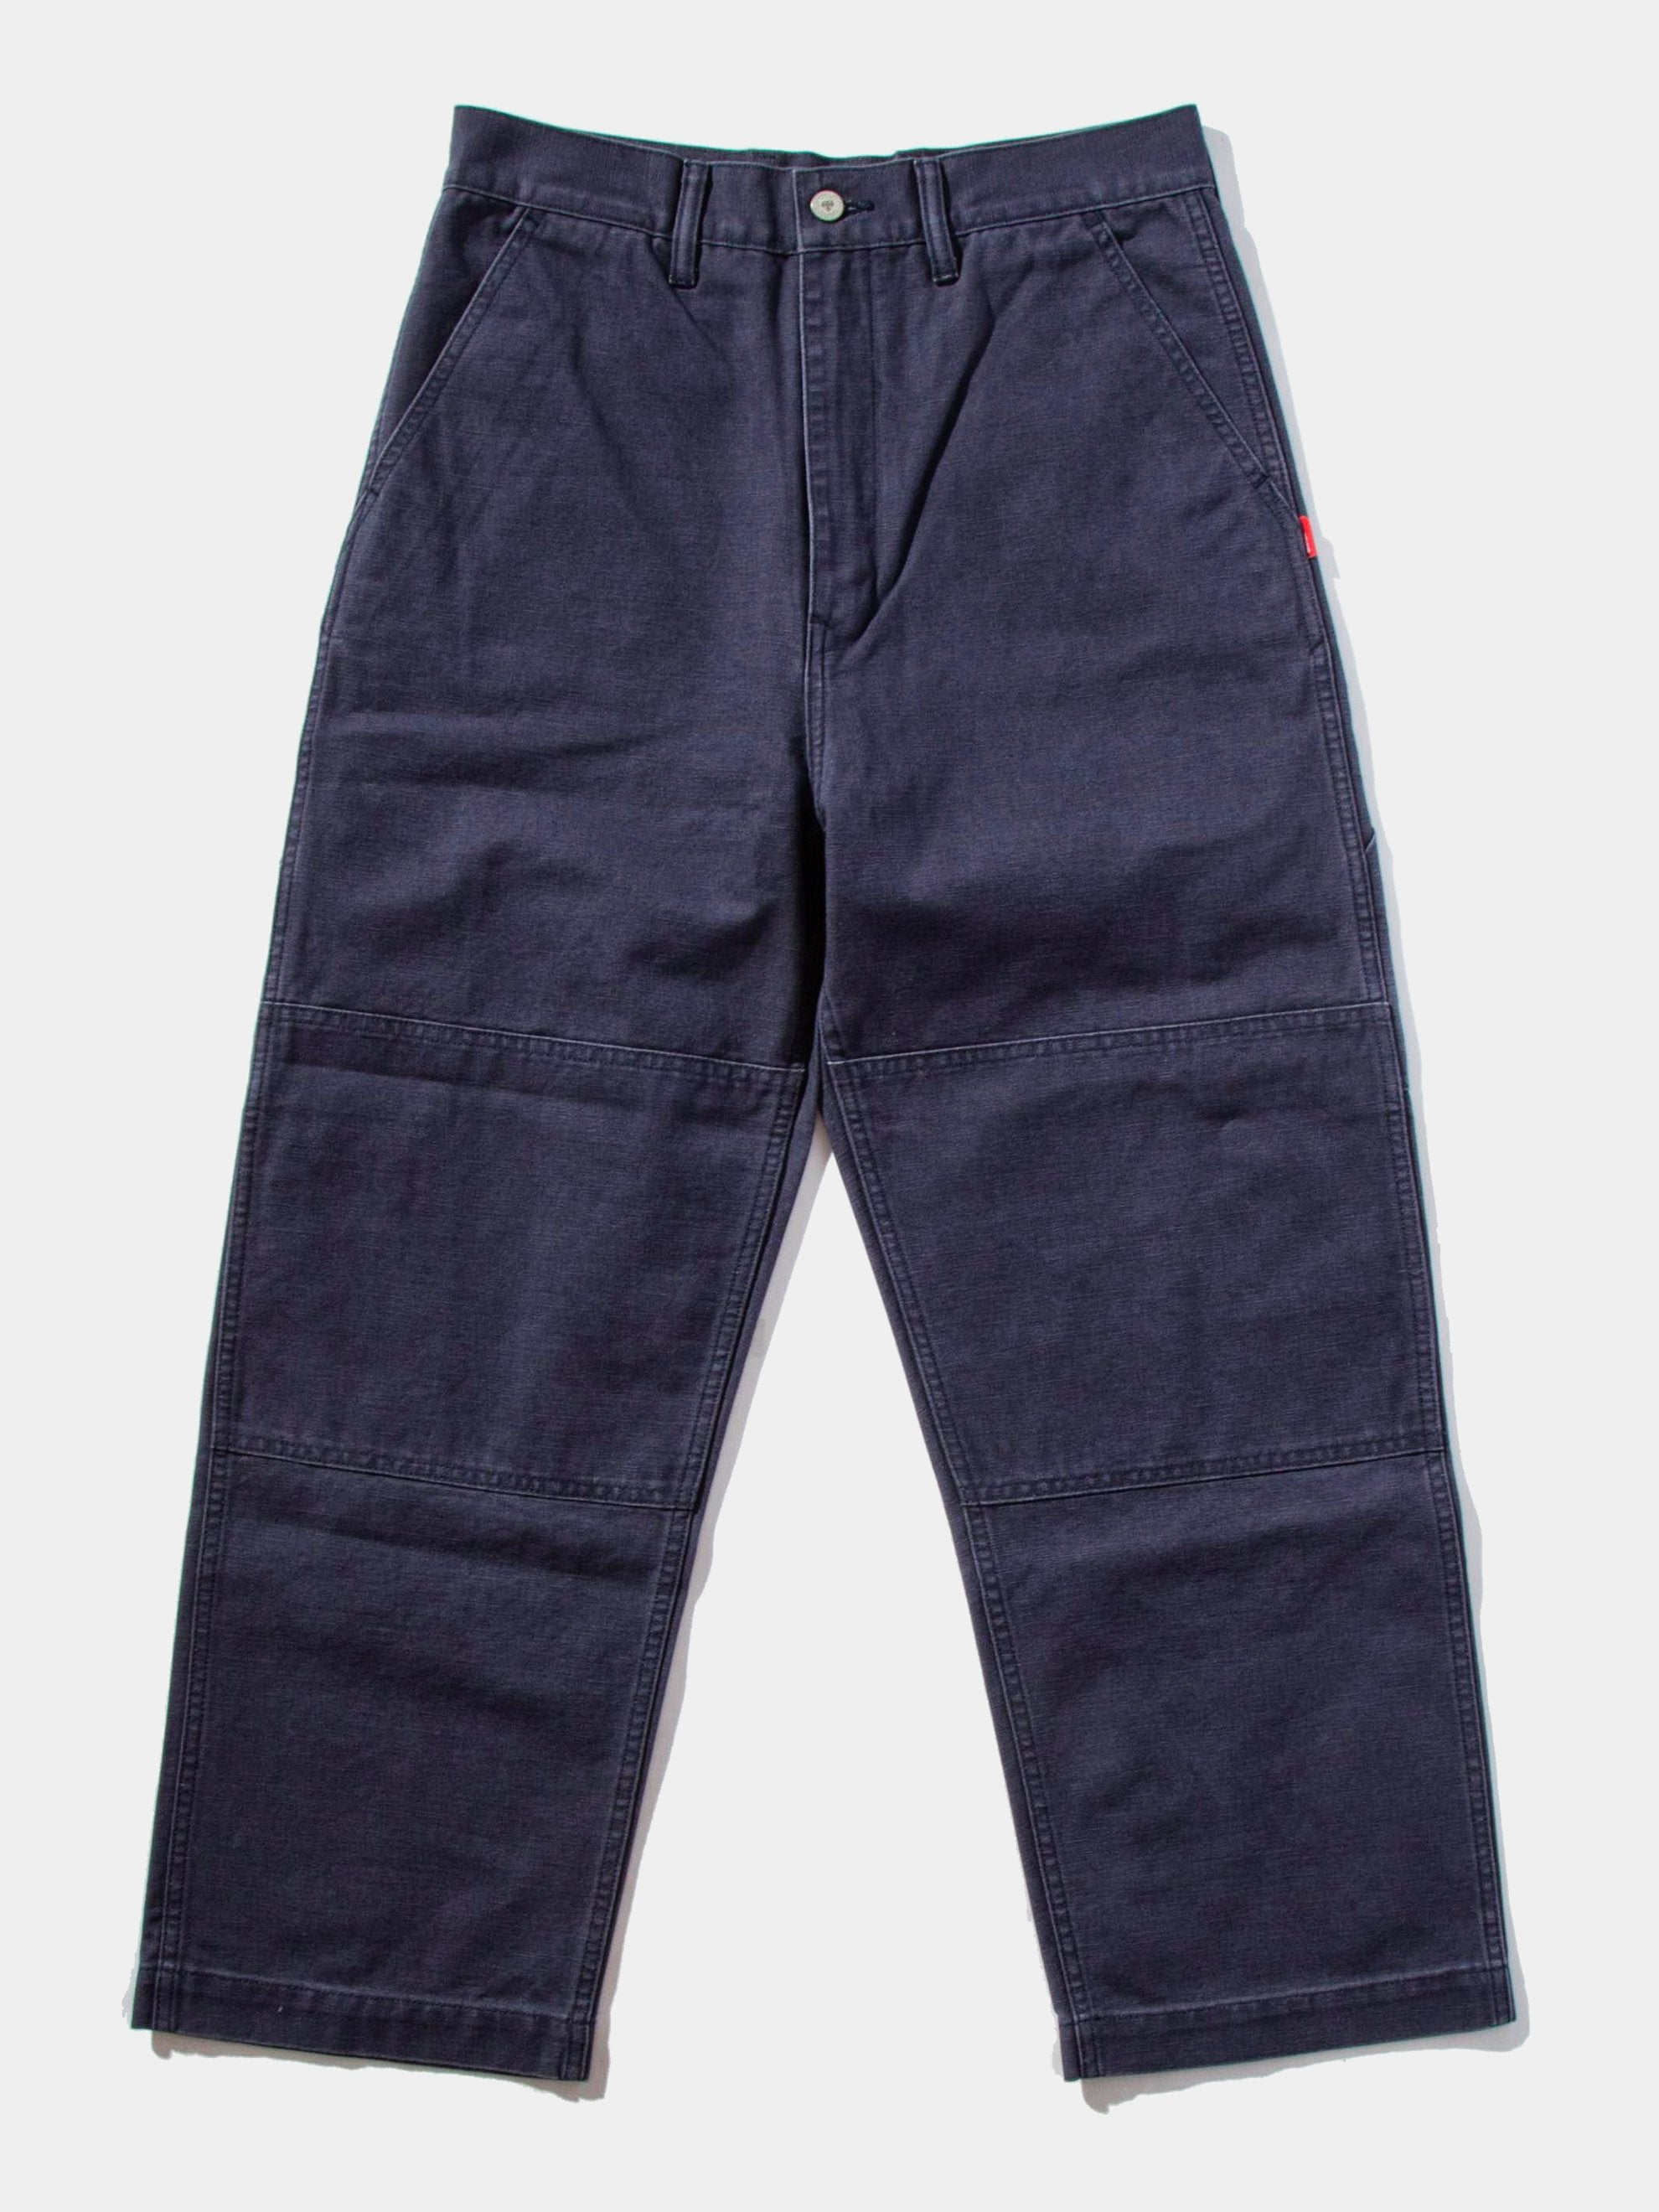 Navy Armstrong Trousers (Duck) 1